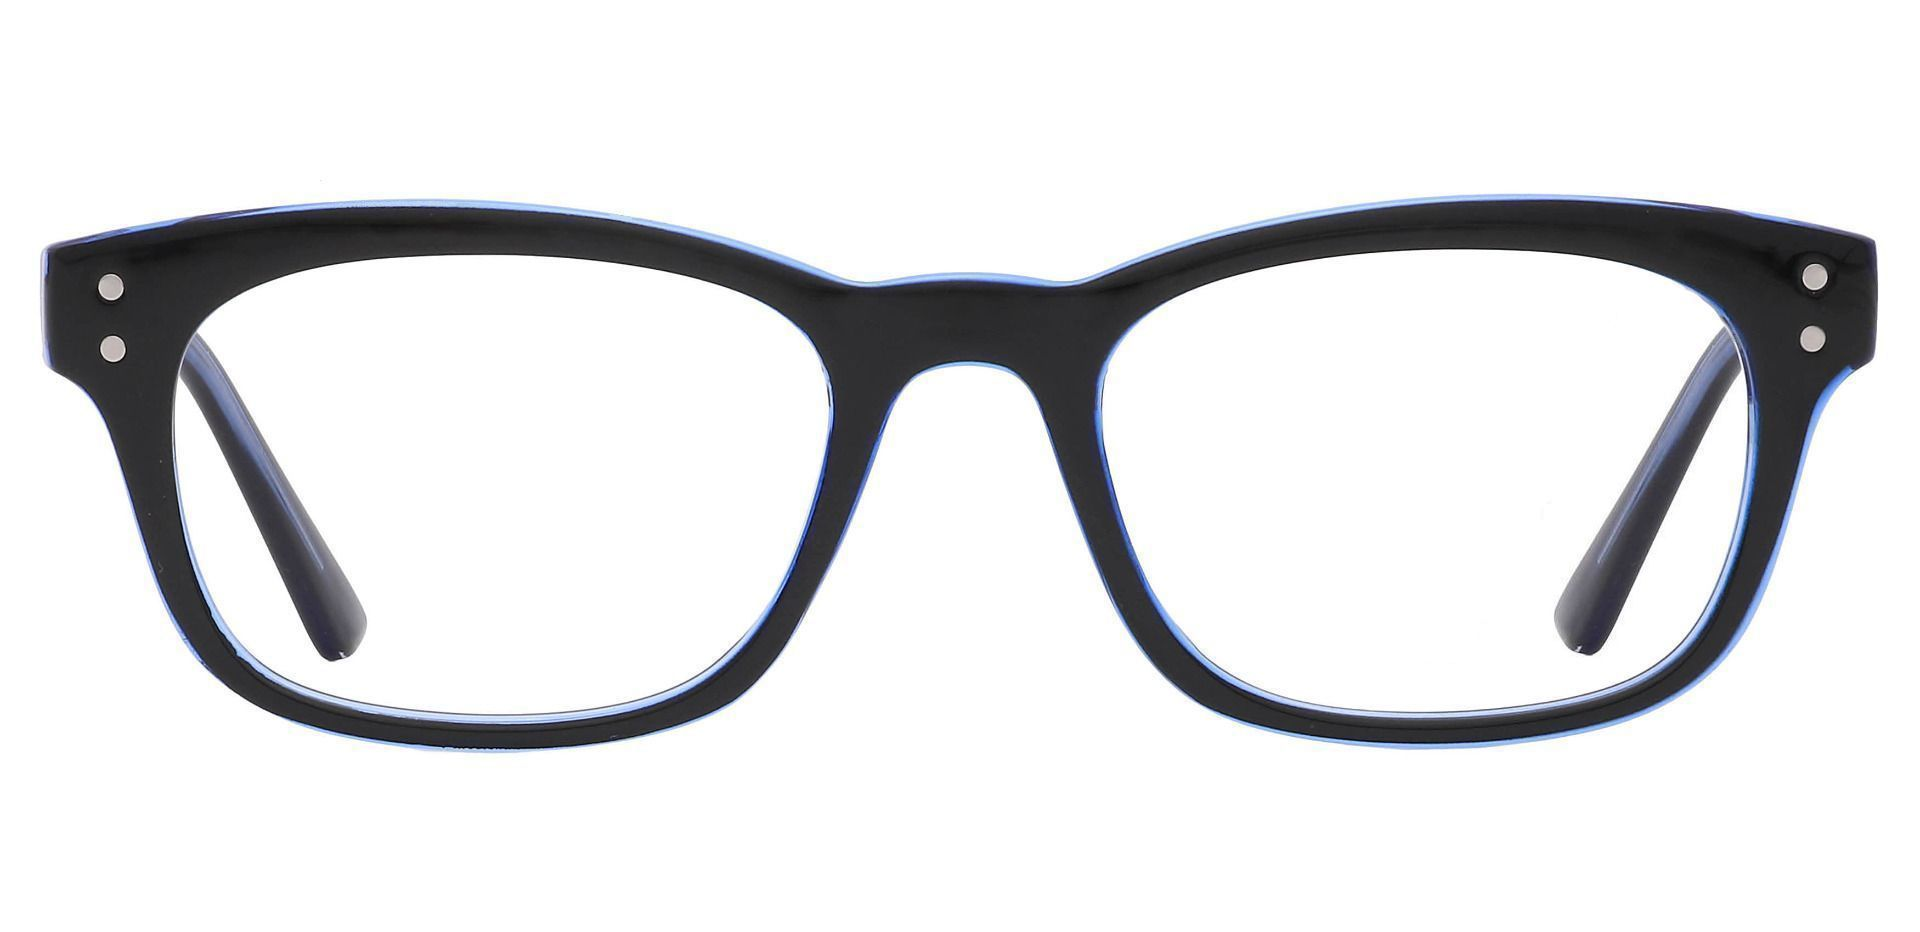 Hanover Oval Prescription Glasses - The Frame Is Blue And Black